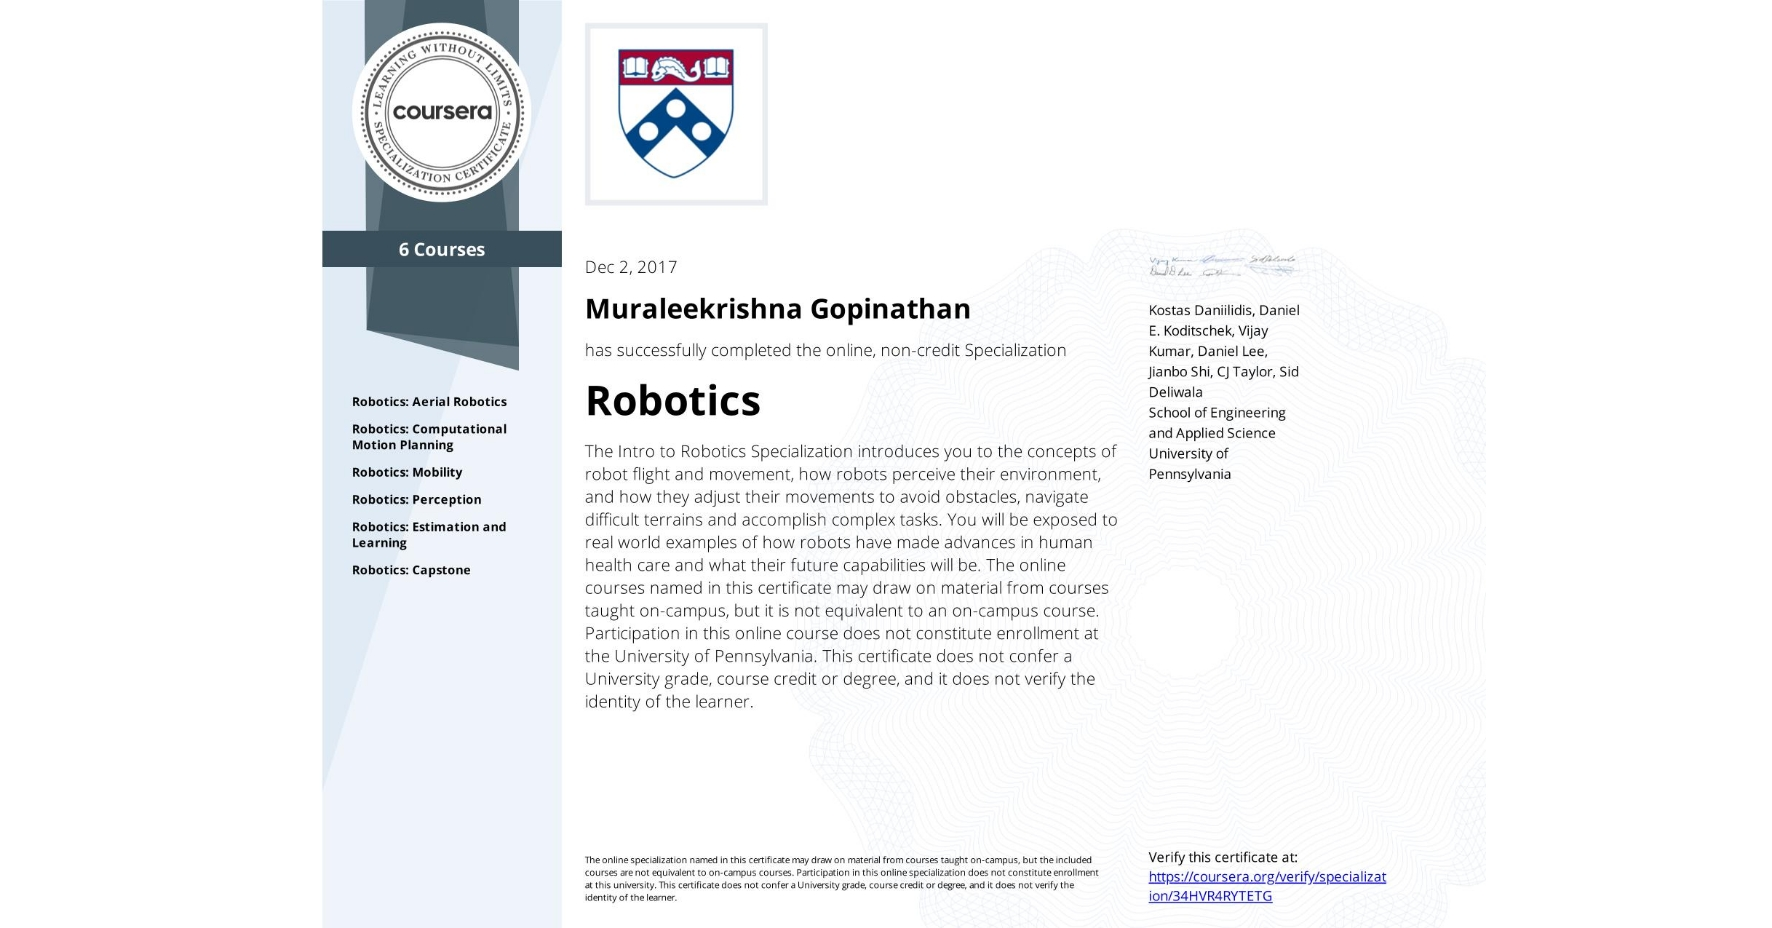 View certificate for Muraleekrishna Gopinathan, Robotics, offered through Coursera. The Intro to Robotics Specialization introduces you to the concepts of robot flight and movement, how robots perceive their environment, and how they adjust their movements to avoid obstacles, navigate difficult terrains and accomplish complex tasks. You will be exposed to real world examples of how robots have made advances in human health care and what their future capabilities will be.  The online courses named in this certificate may draw on material from courses taught on-campus, but it is not equivalent to an on-campus course. Participation in this online course does not constitute enrollment at the University of Pennsylvania. This certificate does not confer a University grade, course credit or degree, and it does not verify the identity of the learner.